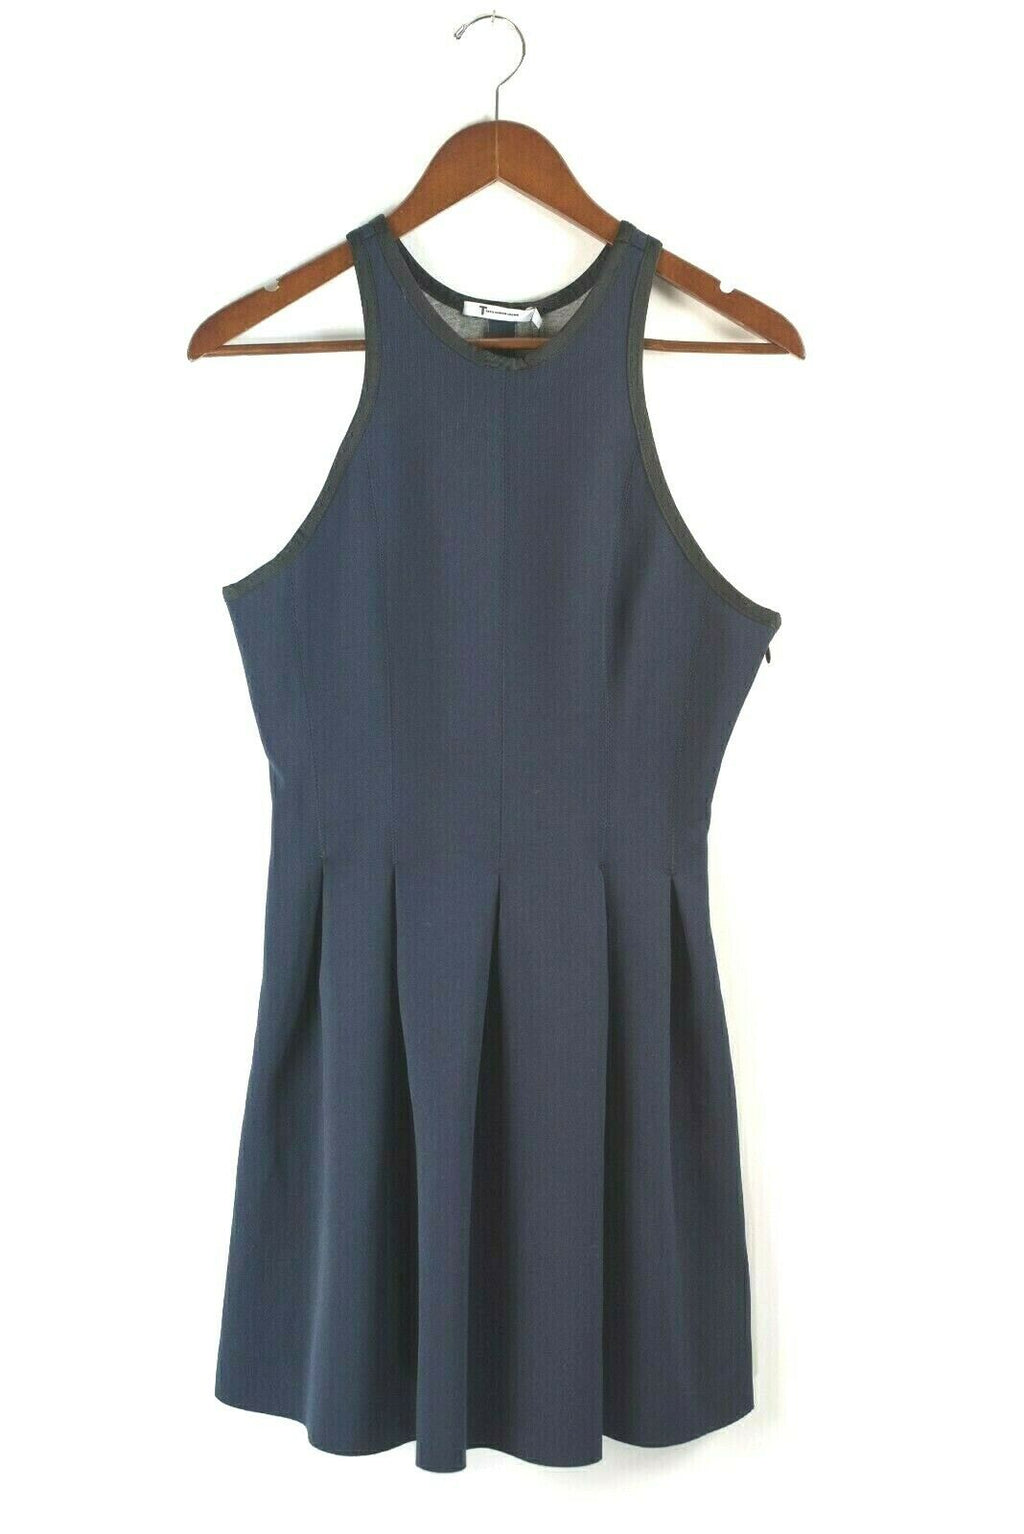 T Alexander Wang Dress Medium